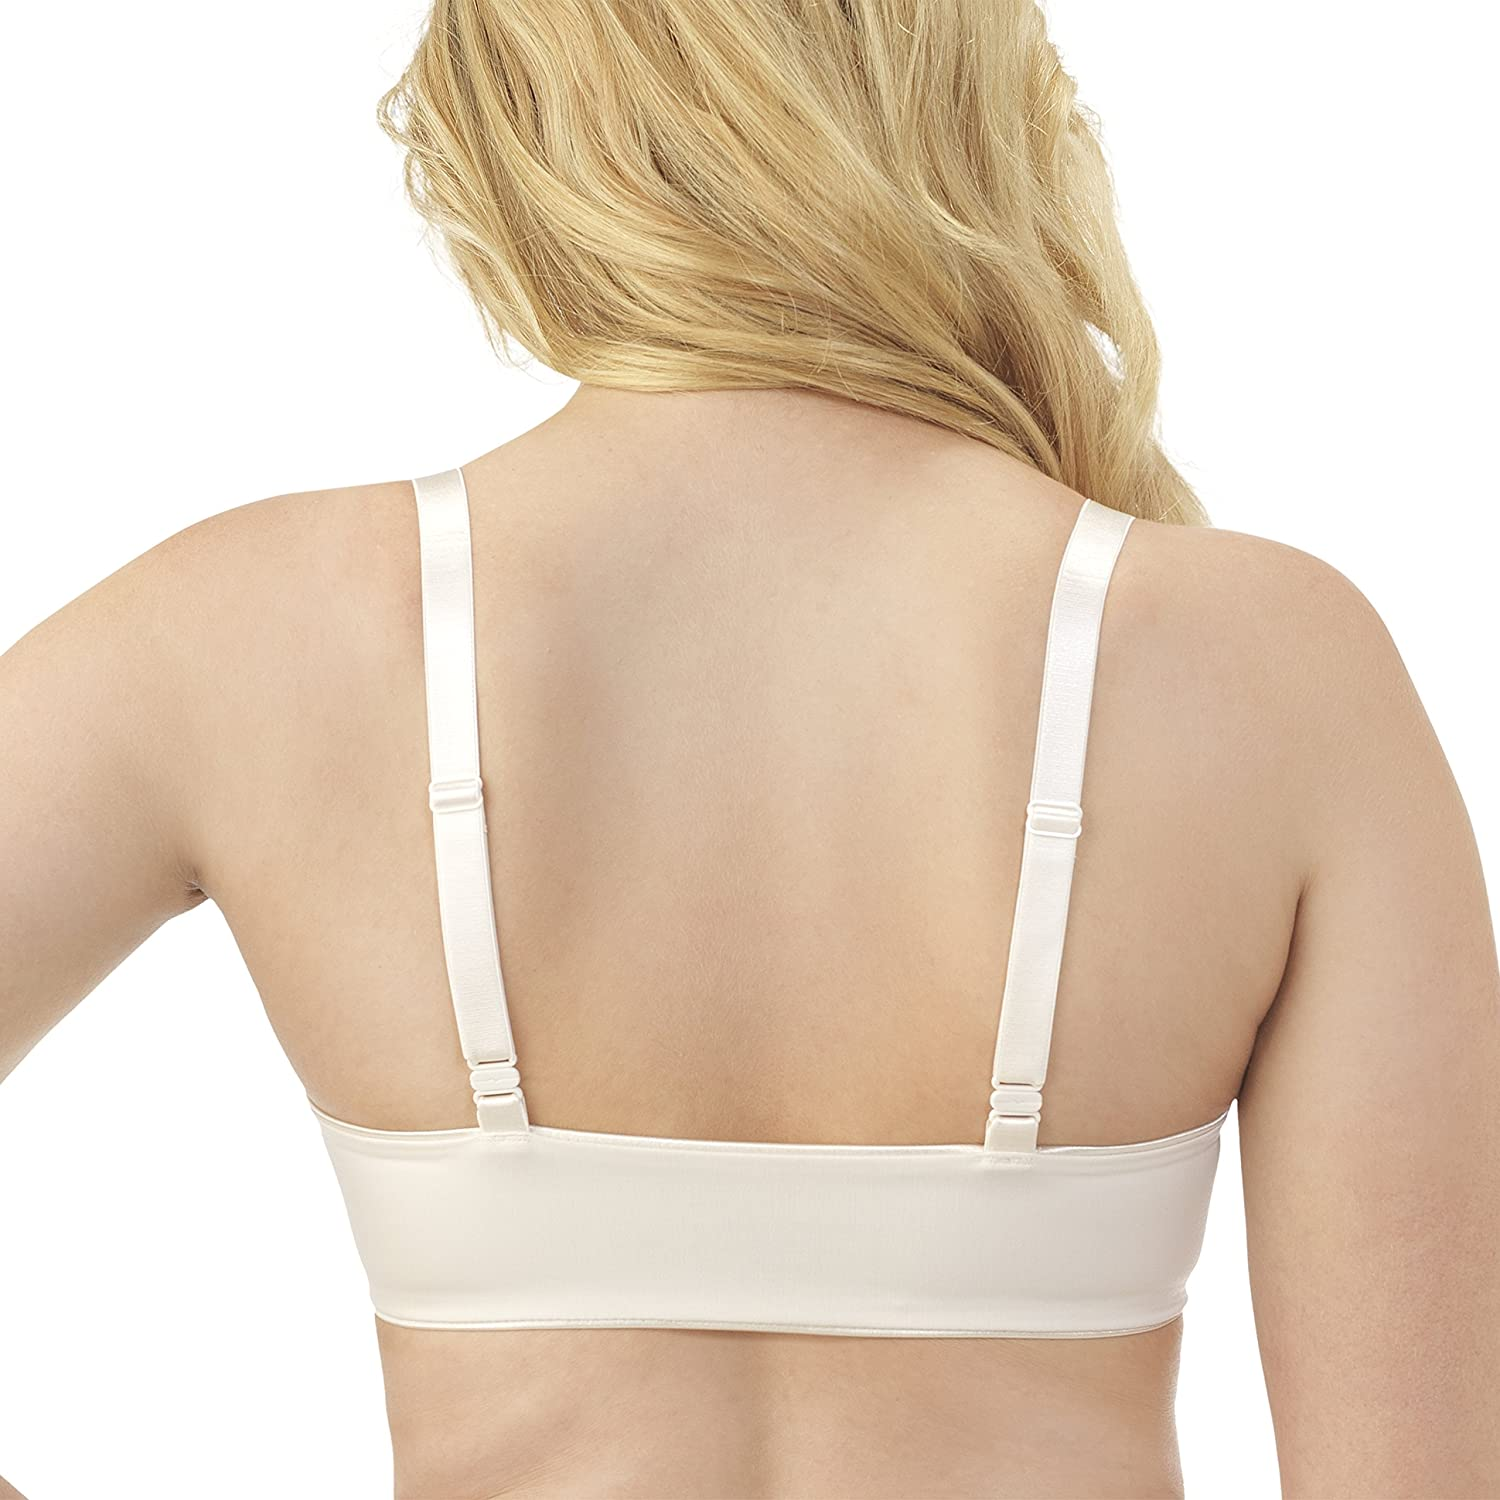 a close underwear sheila front and underwire vanity wardrobe your closure bra give bras strong for fair foundation